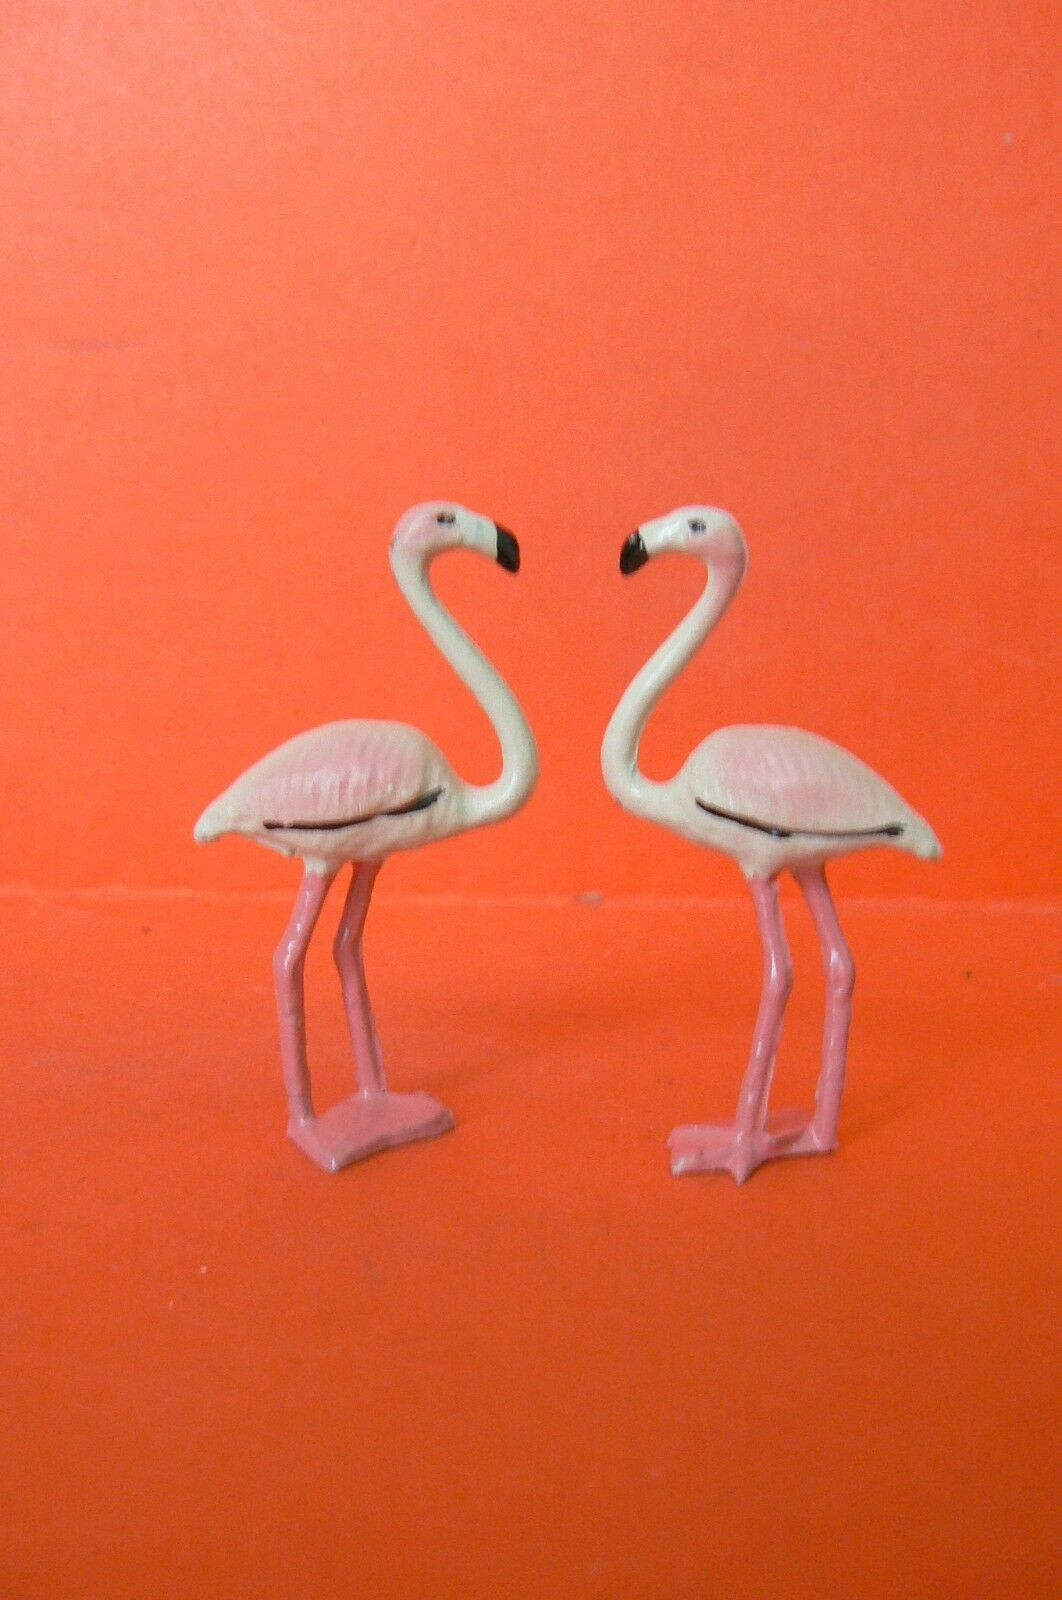 LEAD HOLLOW   BF   CIRCUS OR ANIMALS SAUVAGES   BEAUTIFUL SET OF 2 FLEMISH pinkS